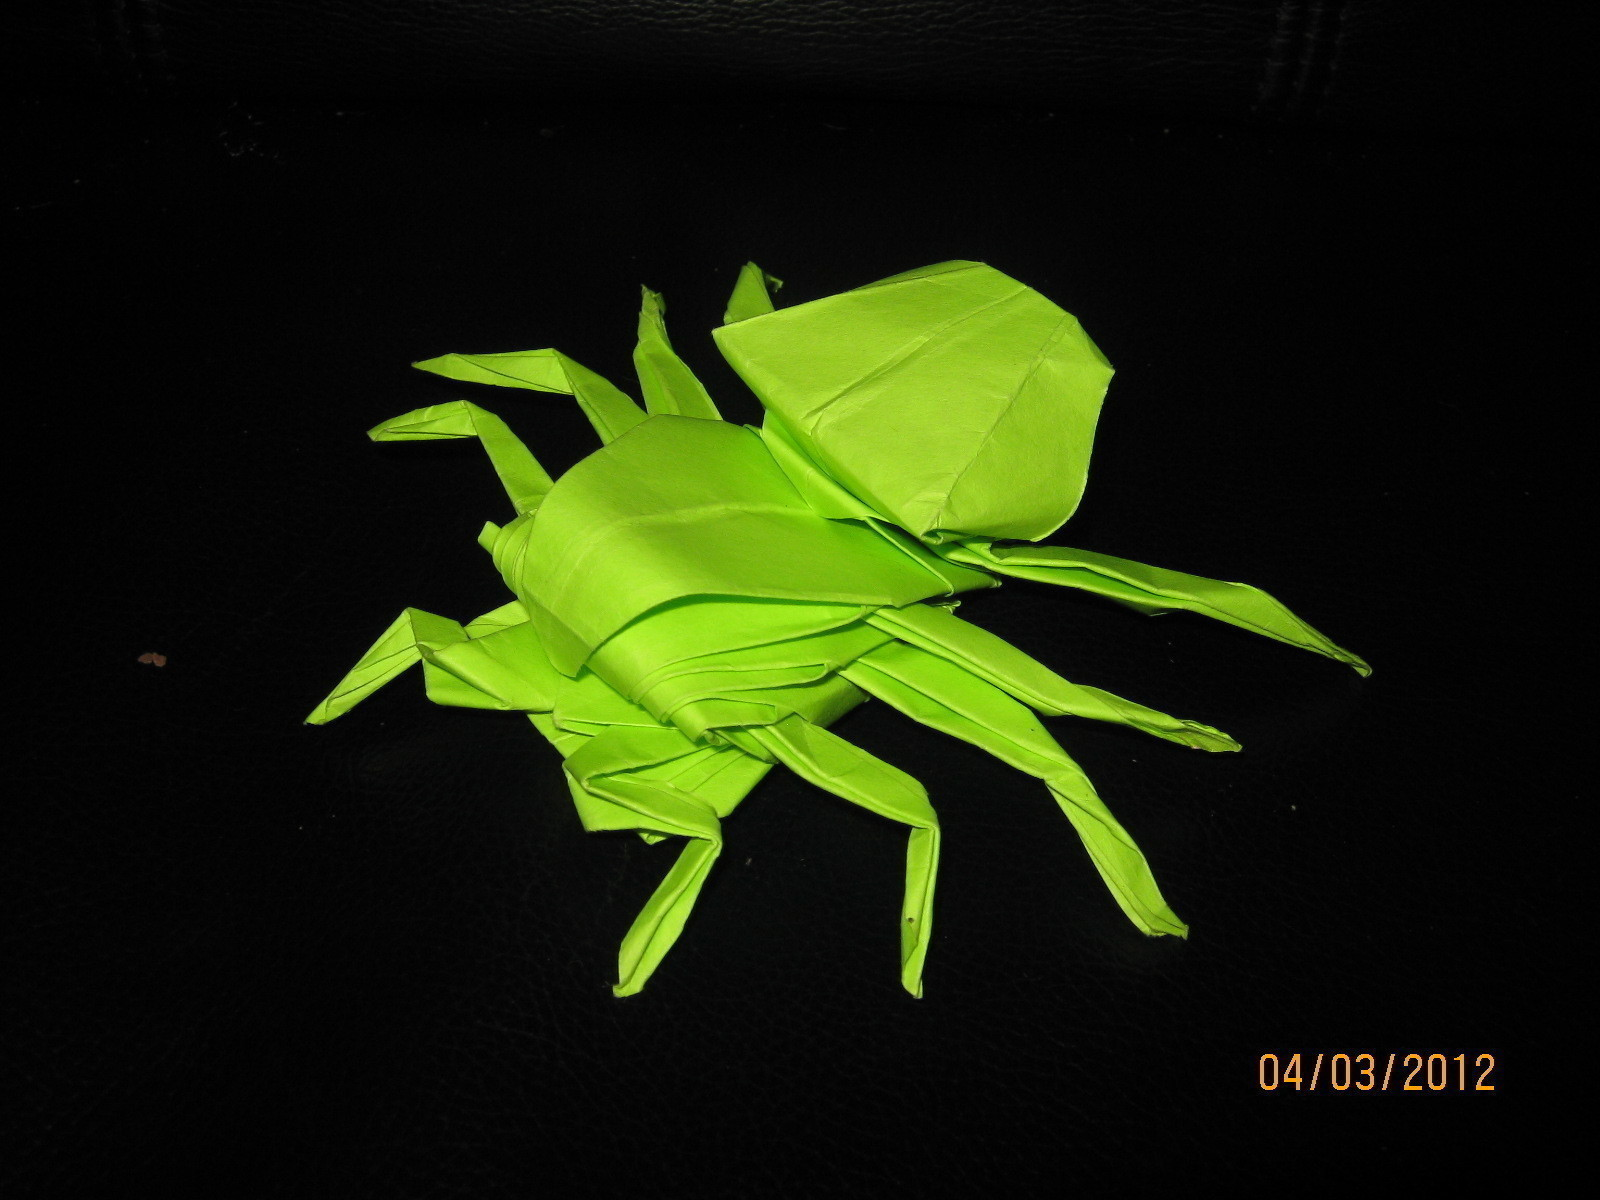 origami spider 183 an origami animal 183 papercraft paper